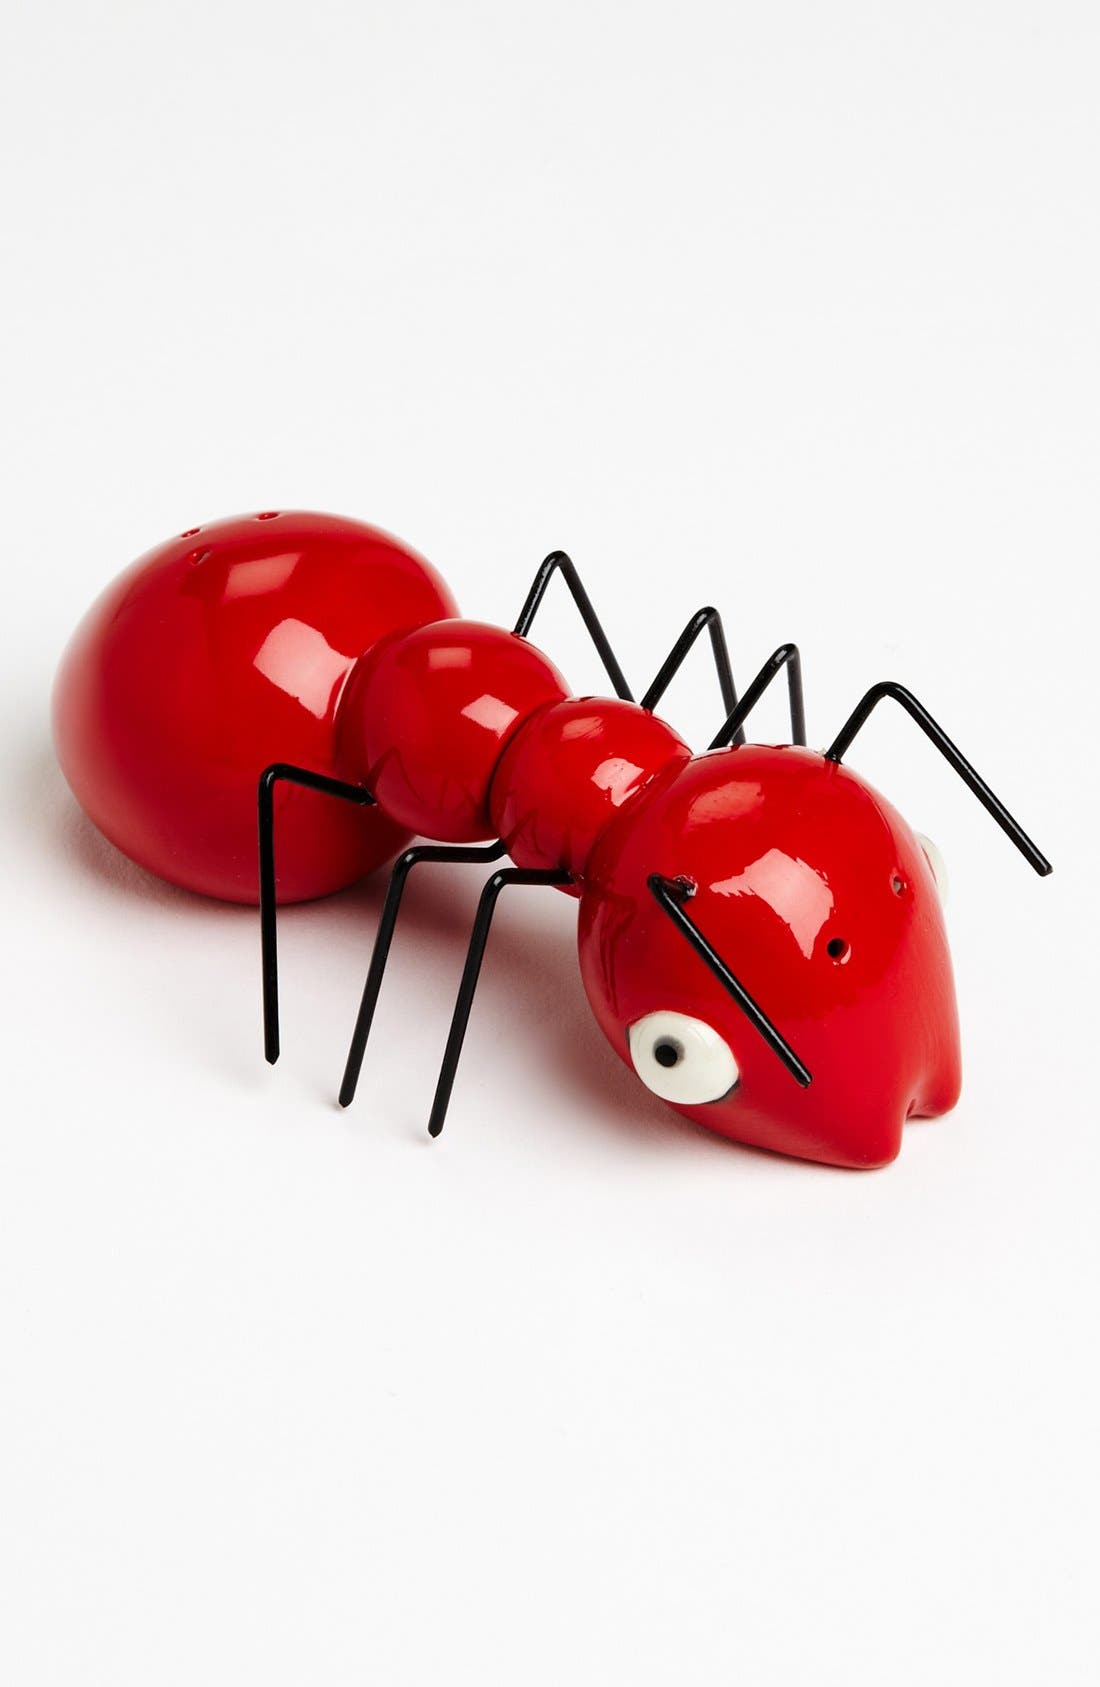 Main Image - Ant Salt & Pepper Shakers